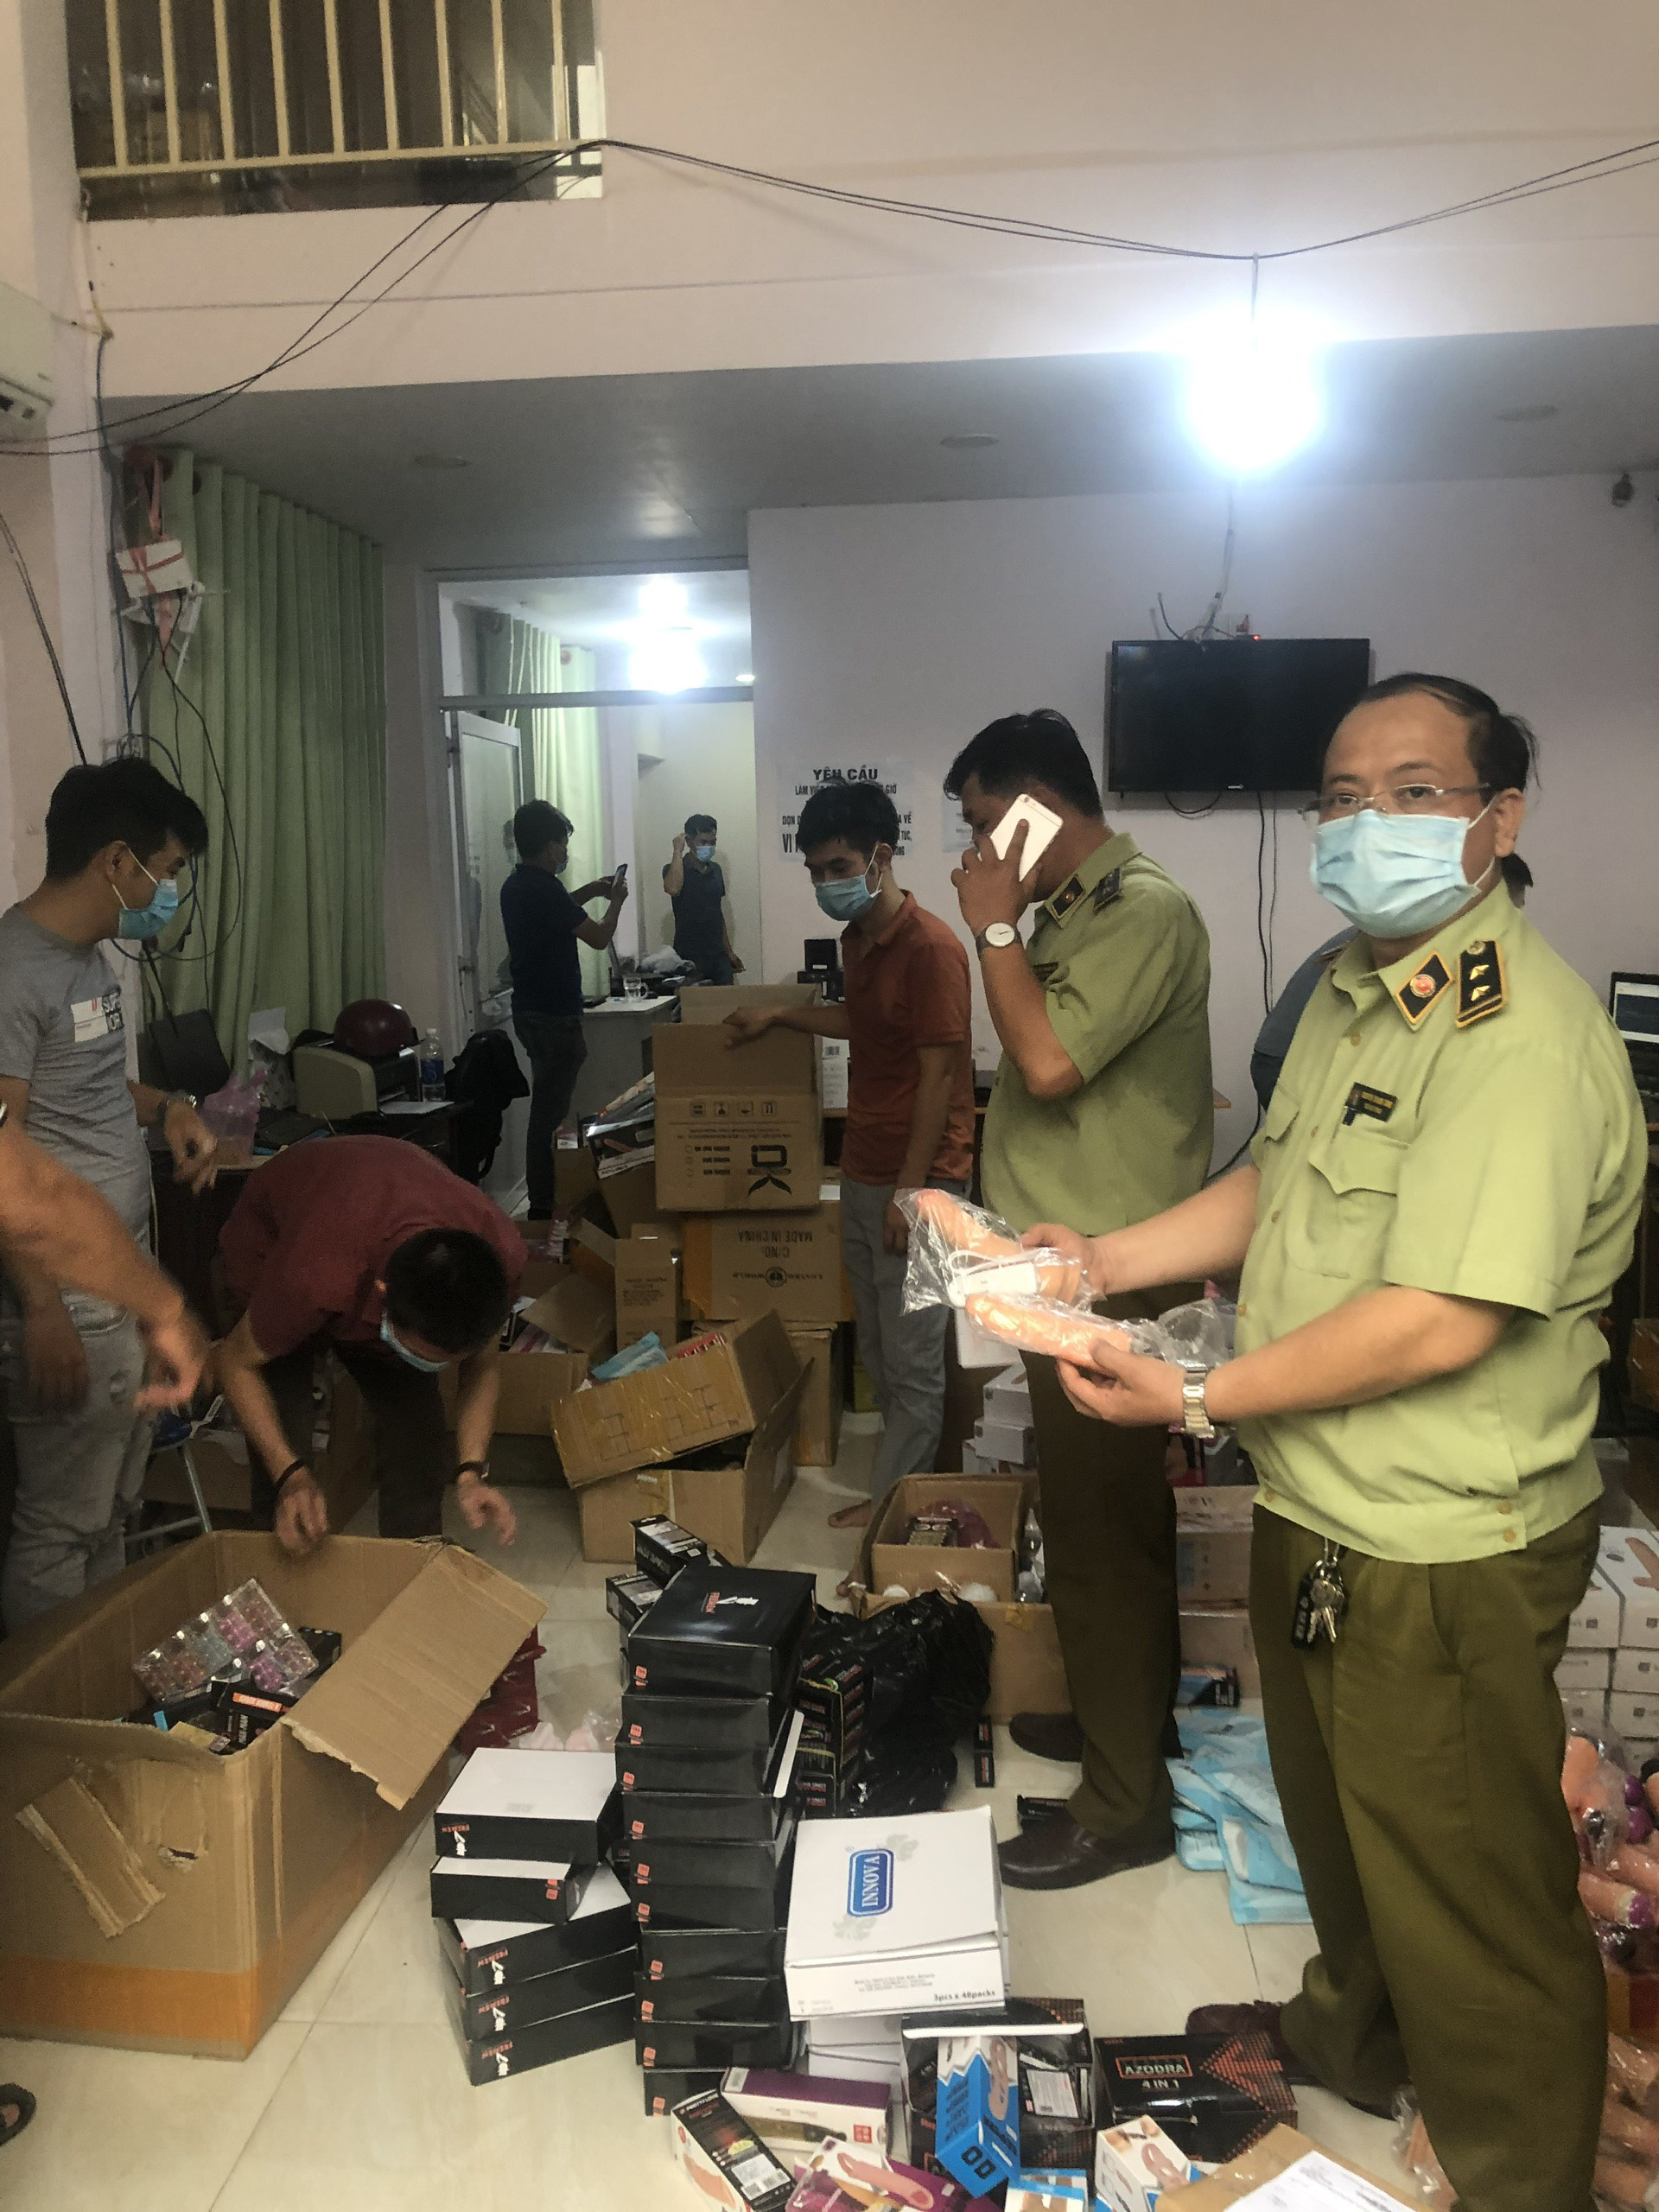 Market watchdog officers examine sexual wellness products of unknown origin at a warehouse in Ho Chi Minh City, May 15, 2021 in this supplied photo.